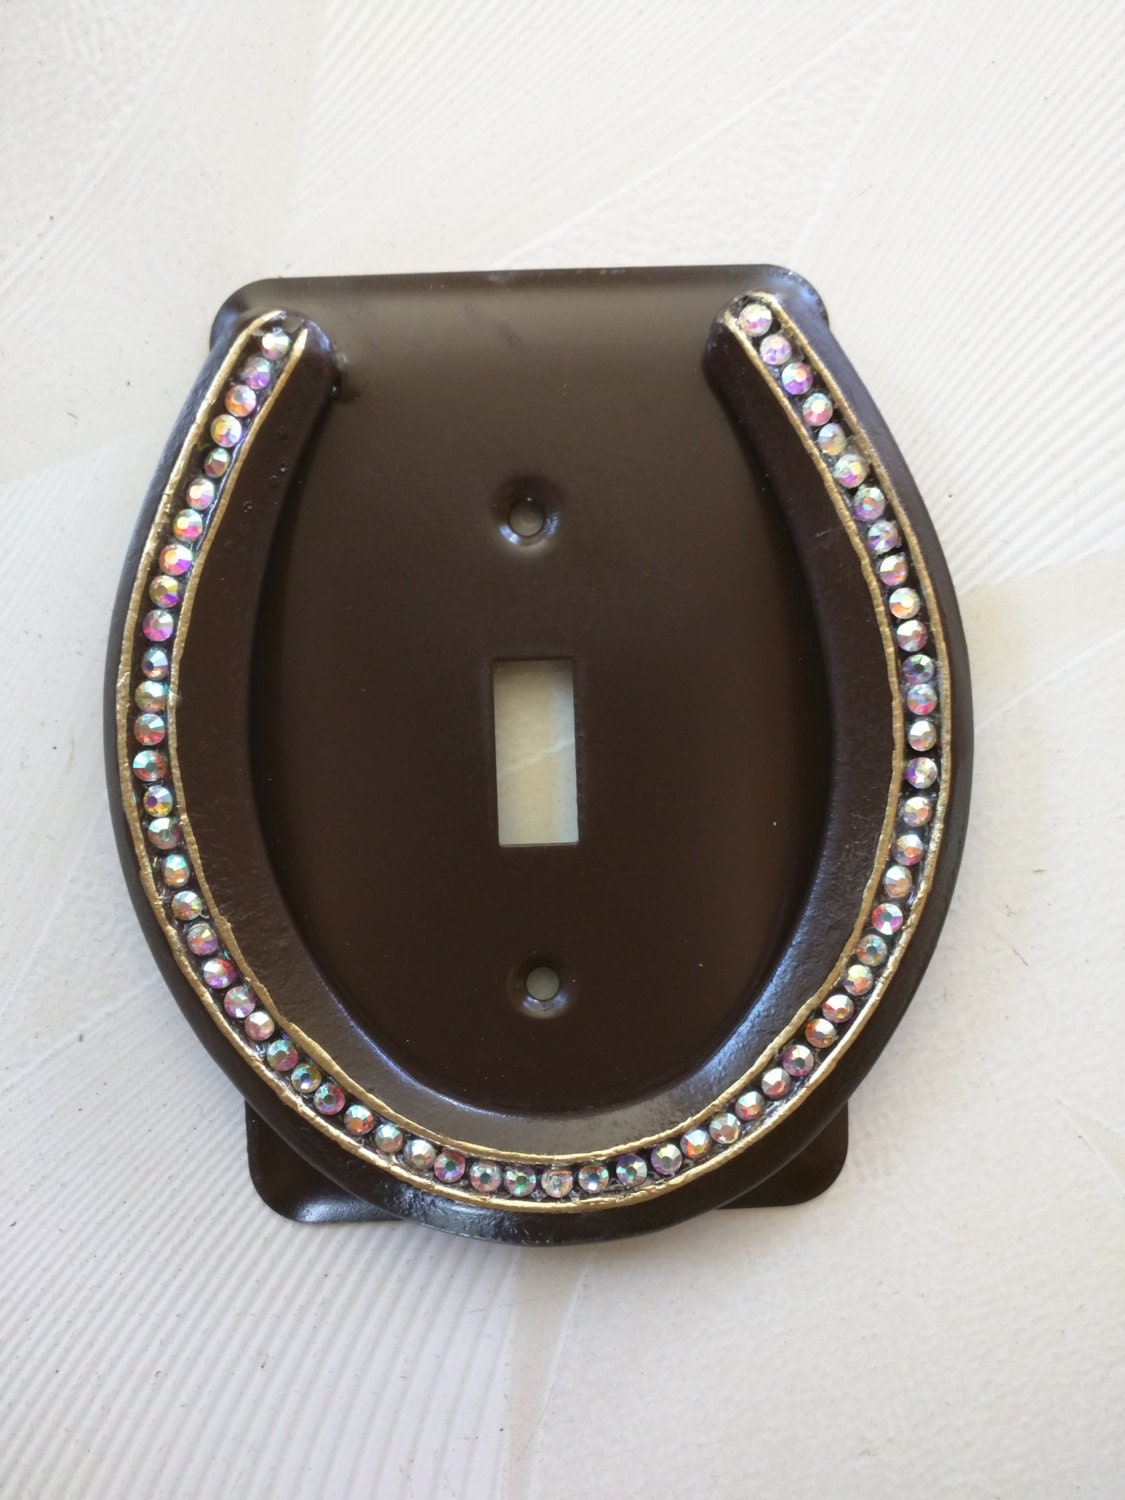 Metal Horseshoe Light Switch Cover Plate With Ab White Crystal